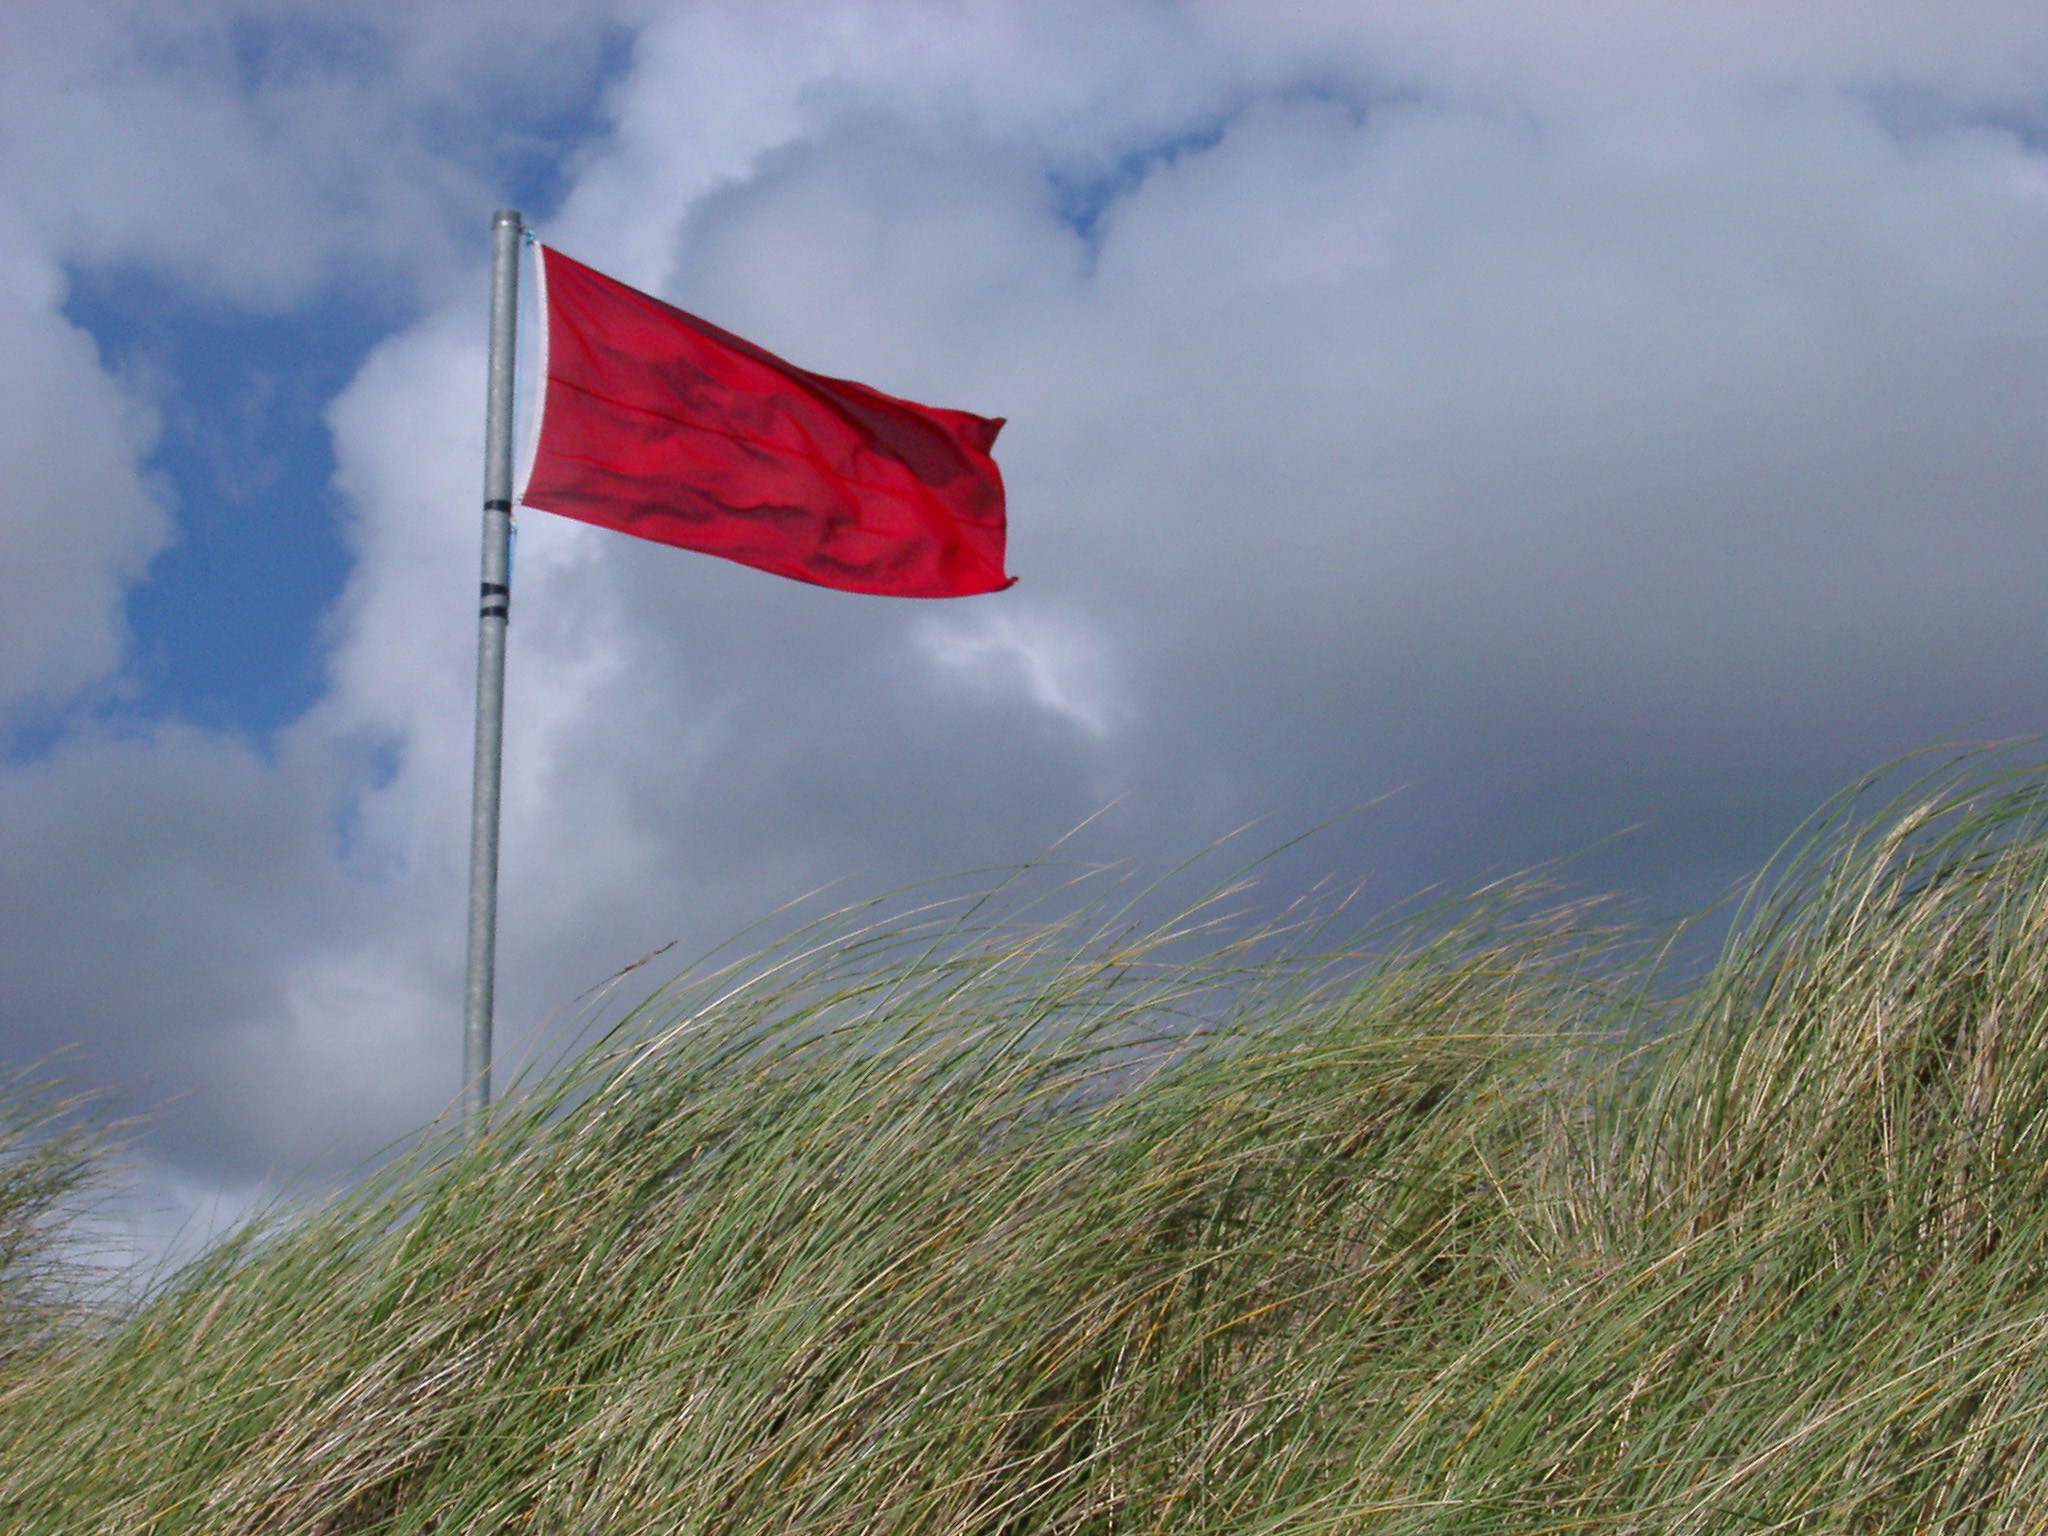 Looking Up at Red No Swimming Warning Flag on Windy Grassy Dune with Dark Clouds